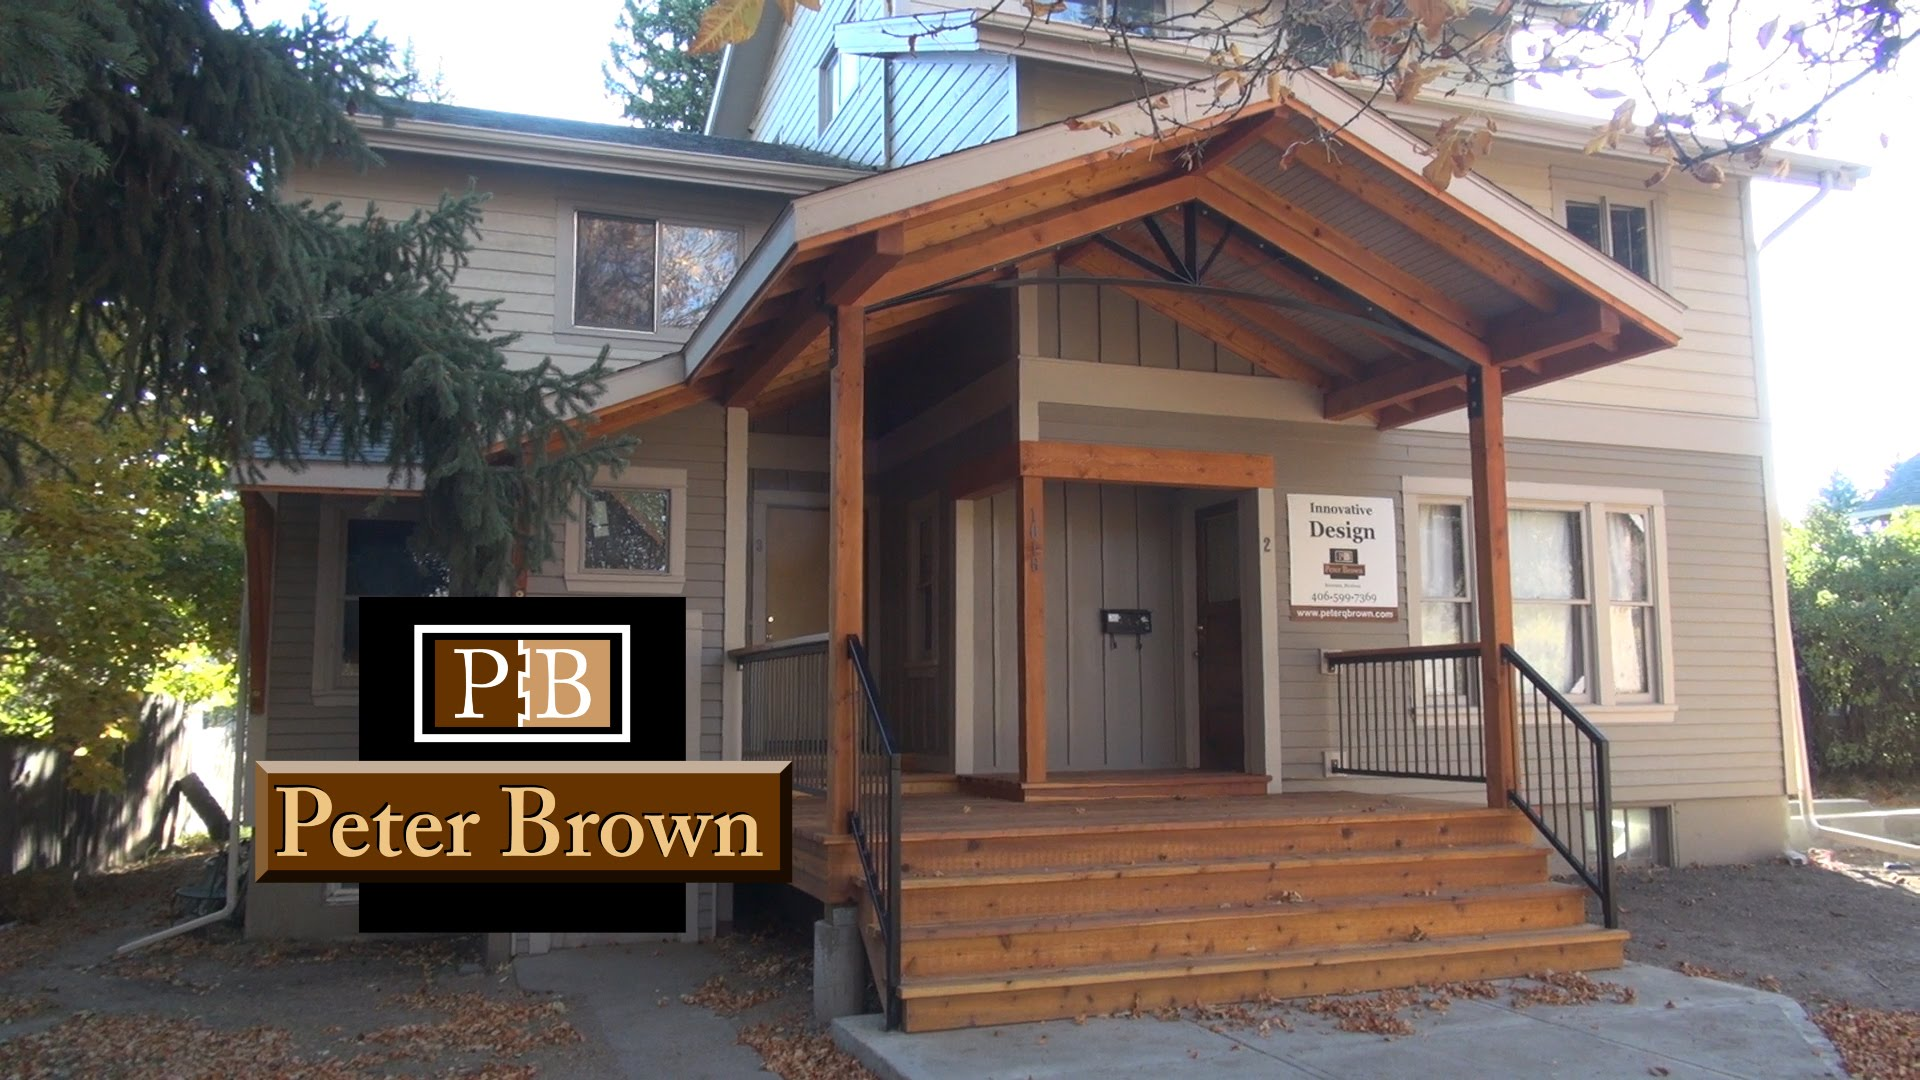 Covered front porch design in bozeman mt bozeman for Covered front porch